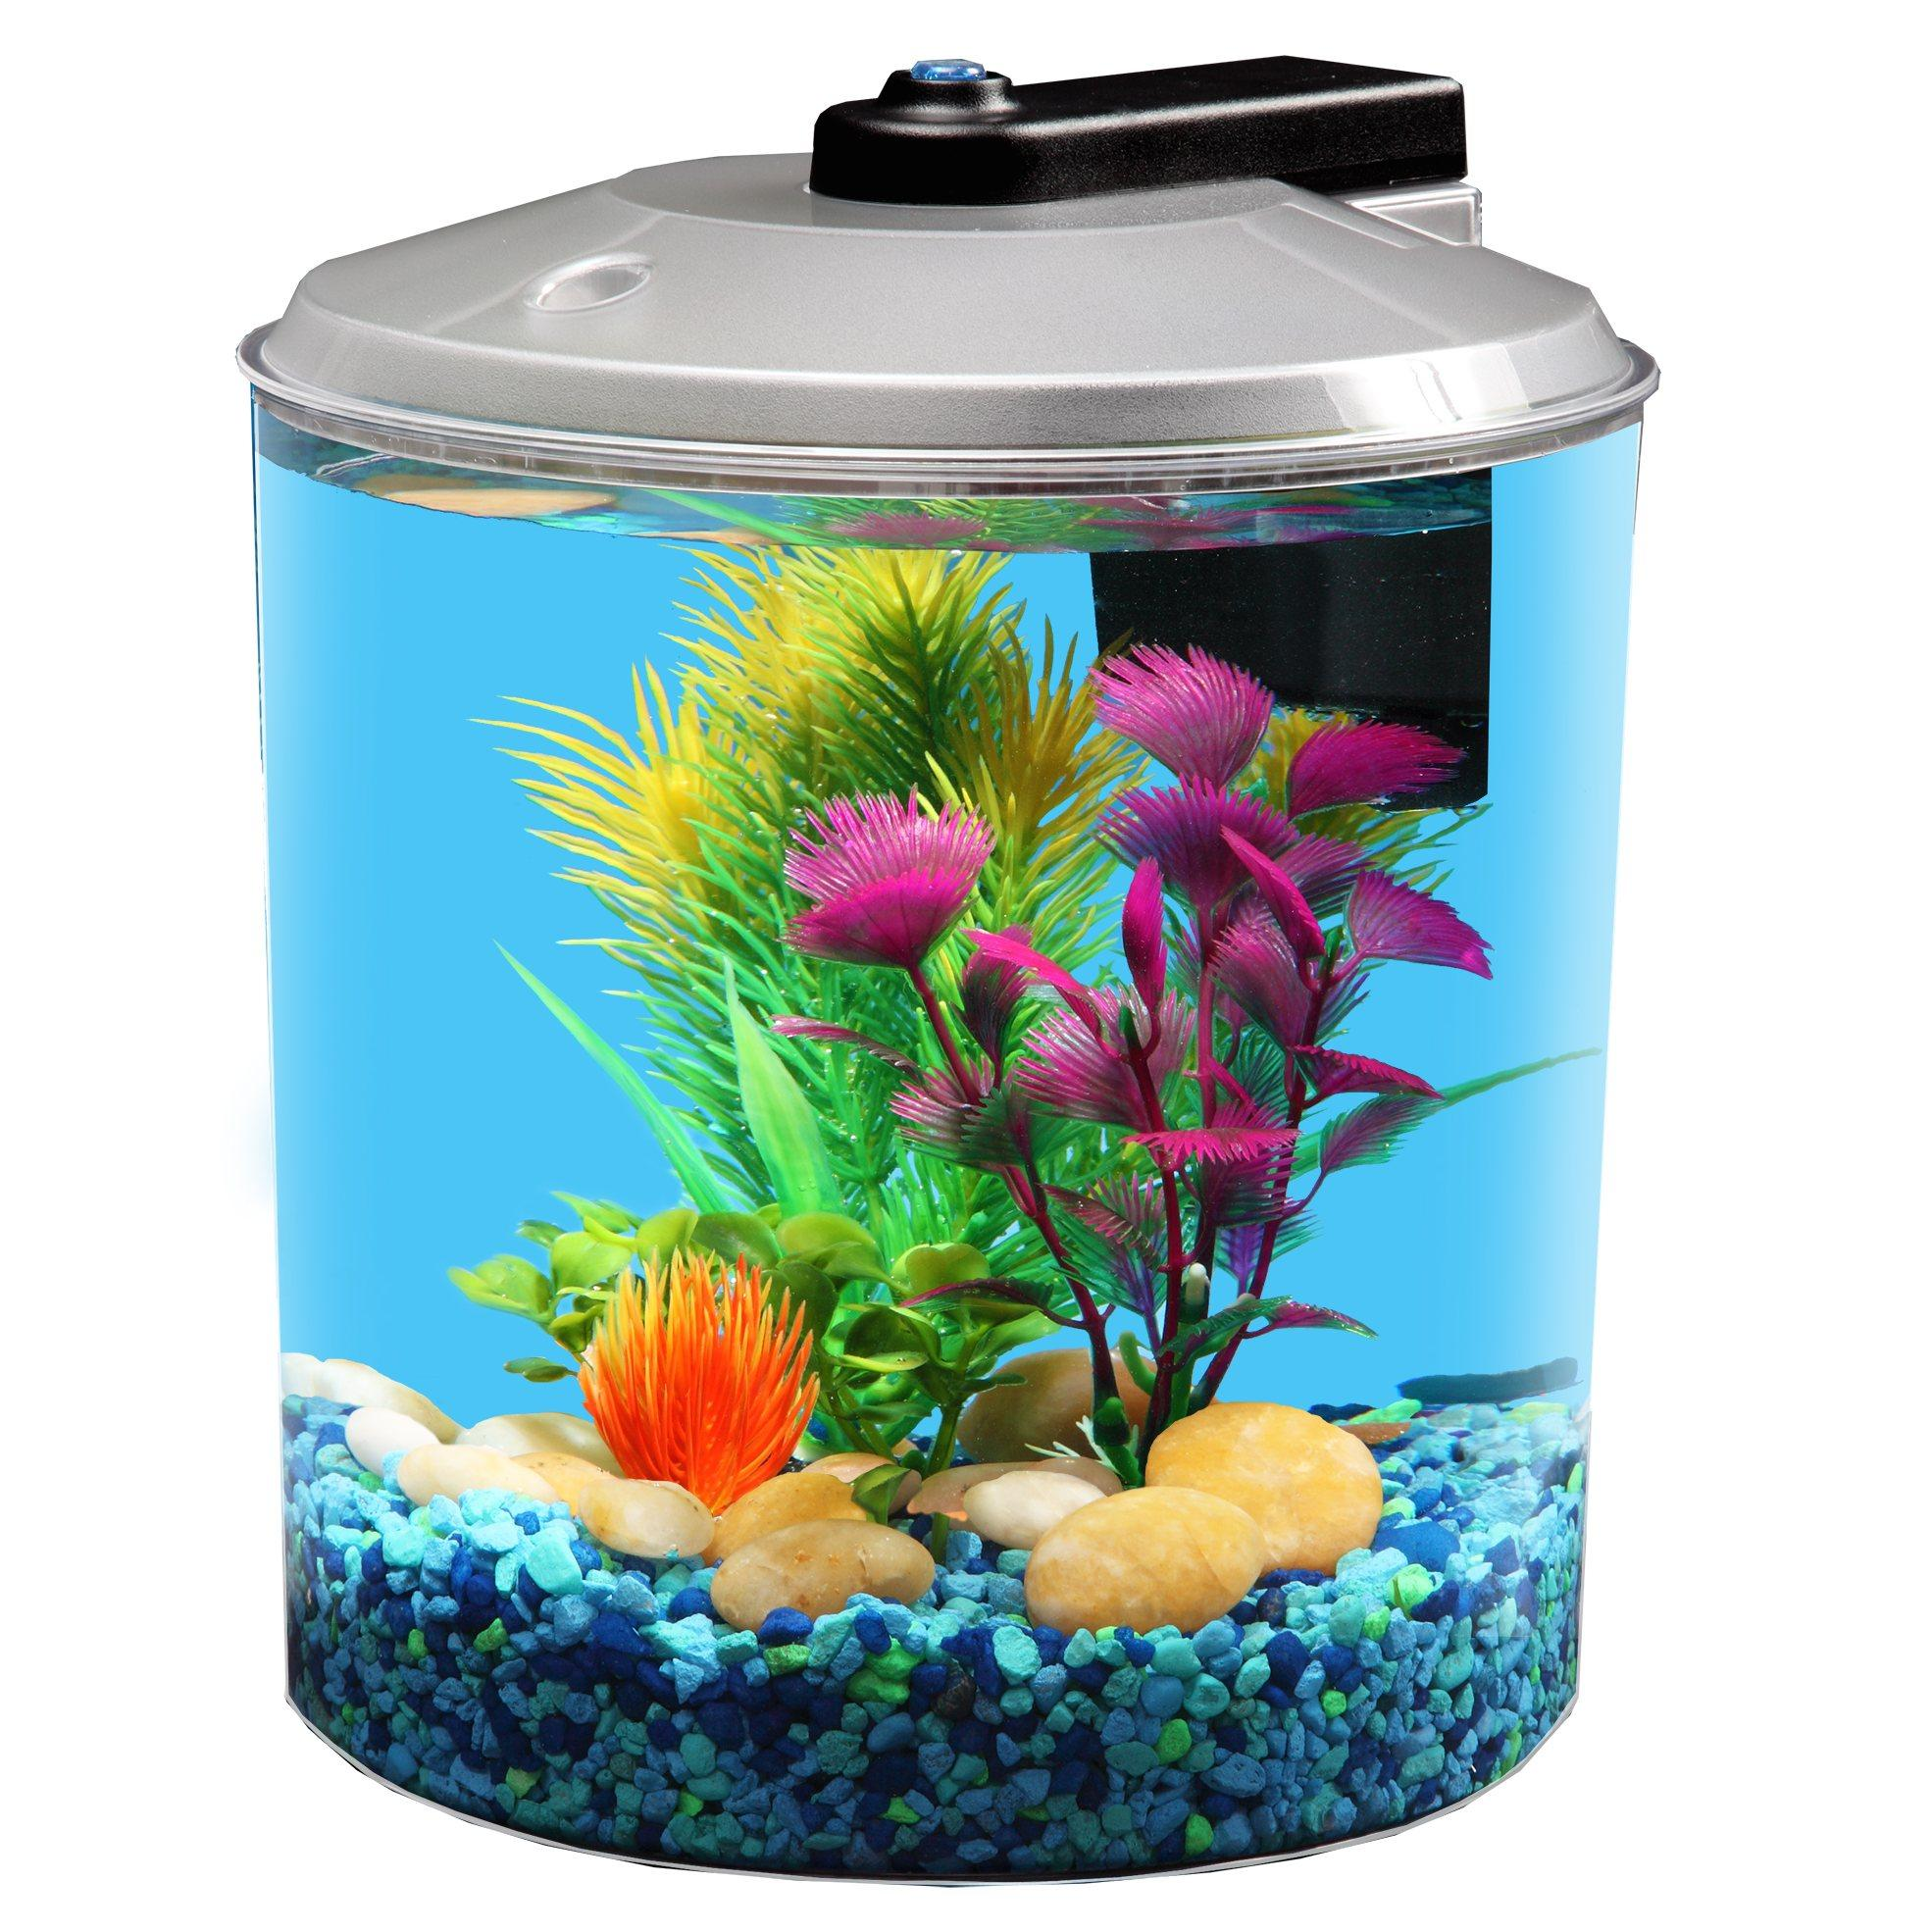 Api Betta Kit 360 Degree Fish Tank 1 5